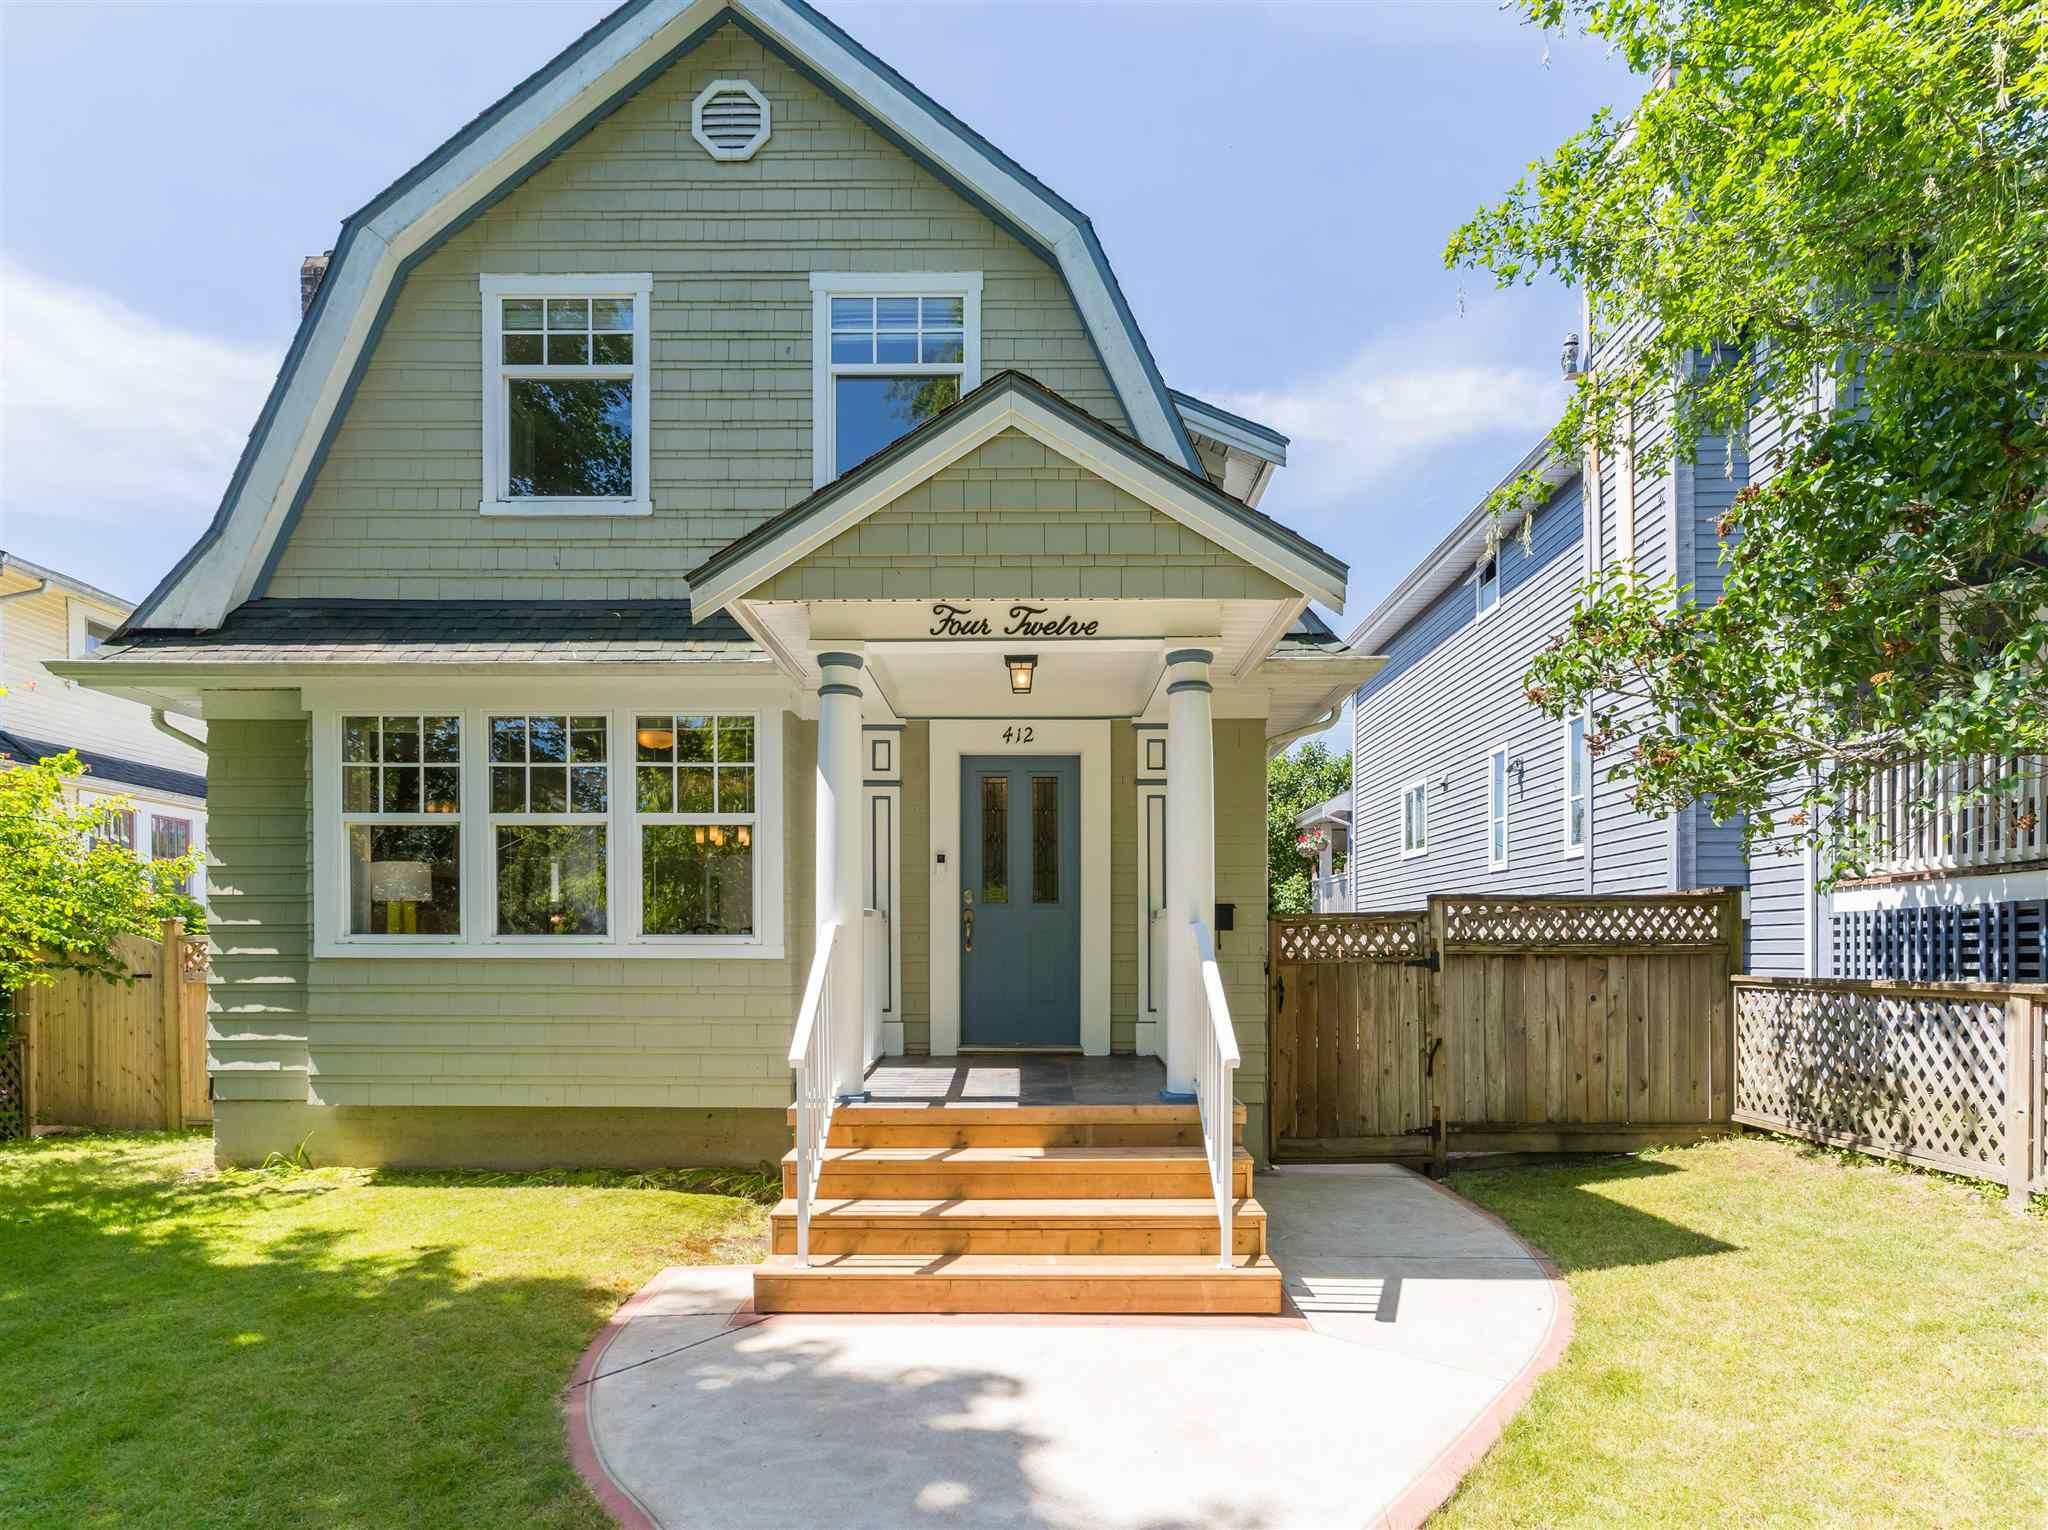 Main Photo: 412 FIFTH Street in New Westminster: Queens Park House for sale : MLS®# R2594885